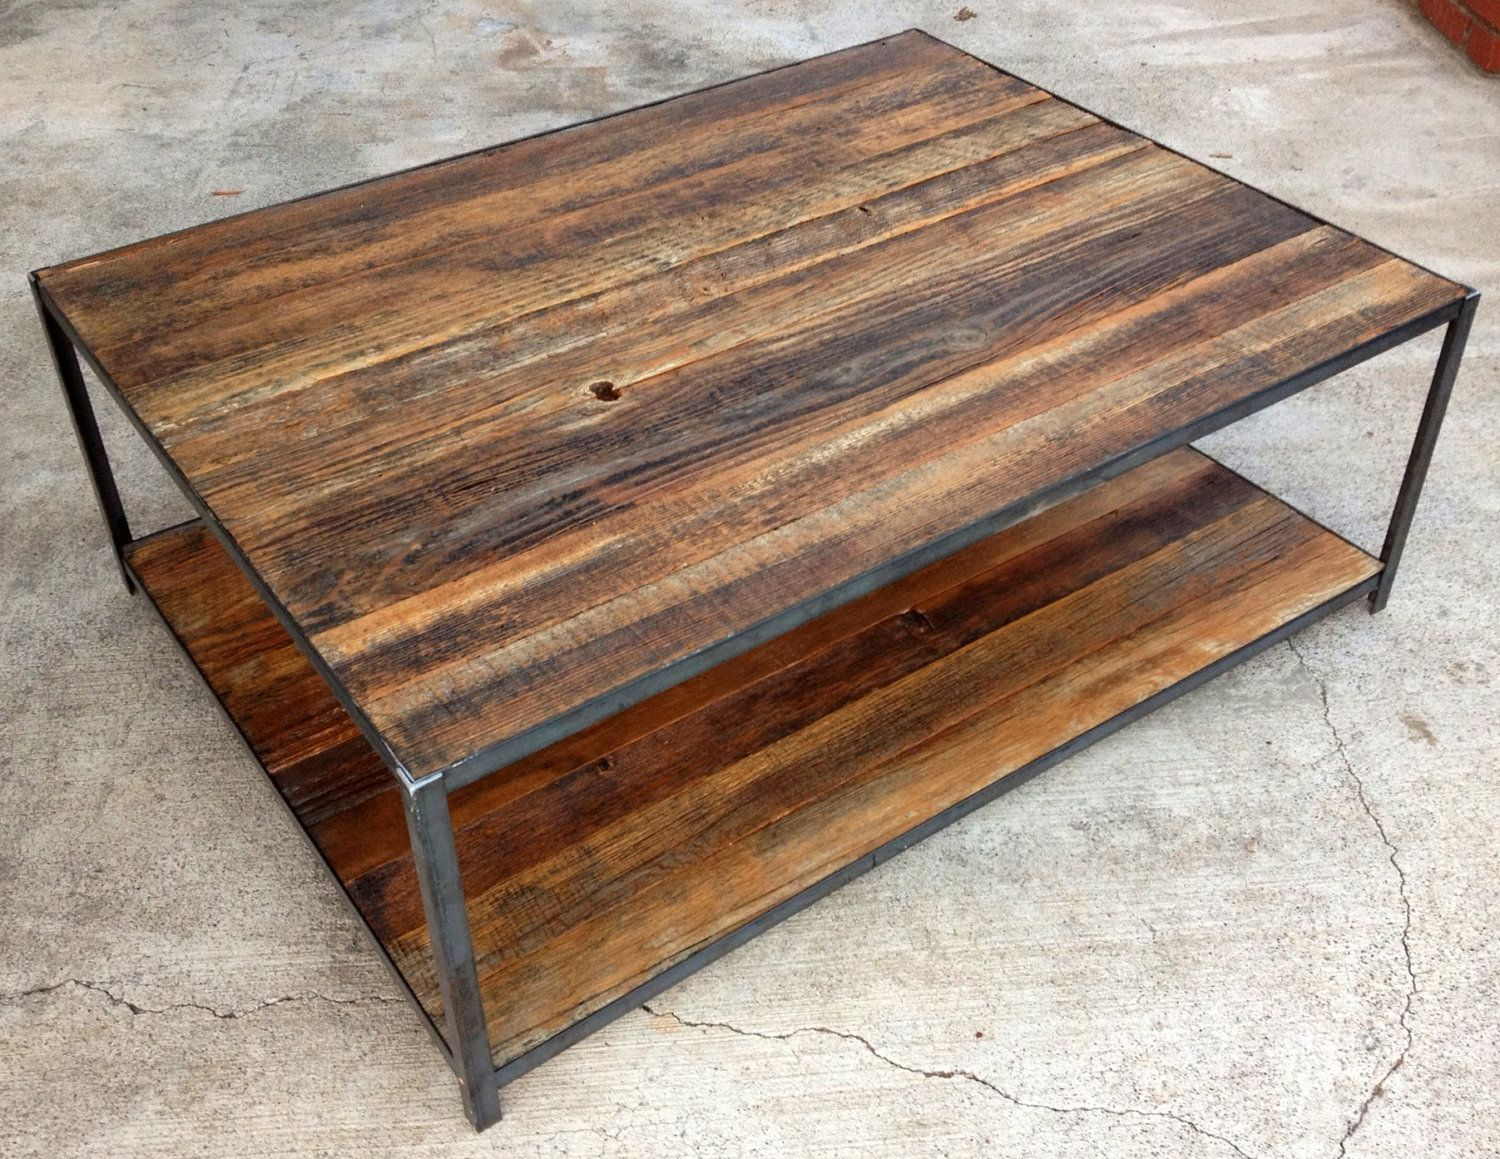 Reclaimed Wood and Angle Iron Coffee Table 40000 via Etsy